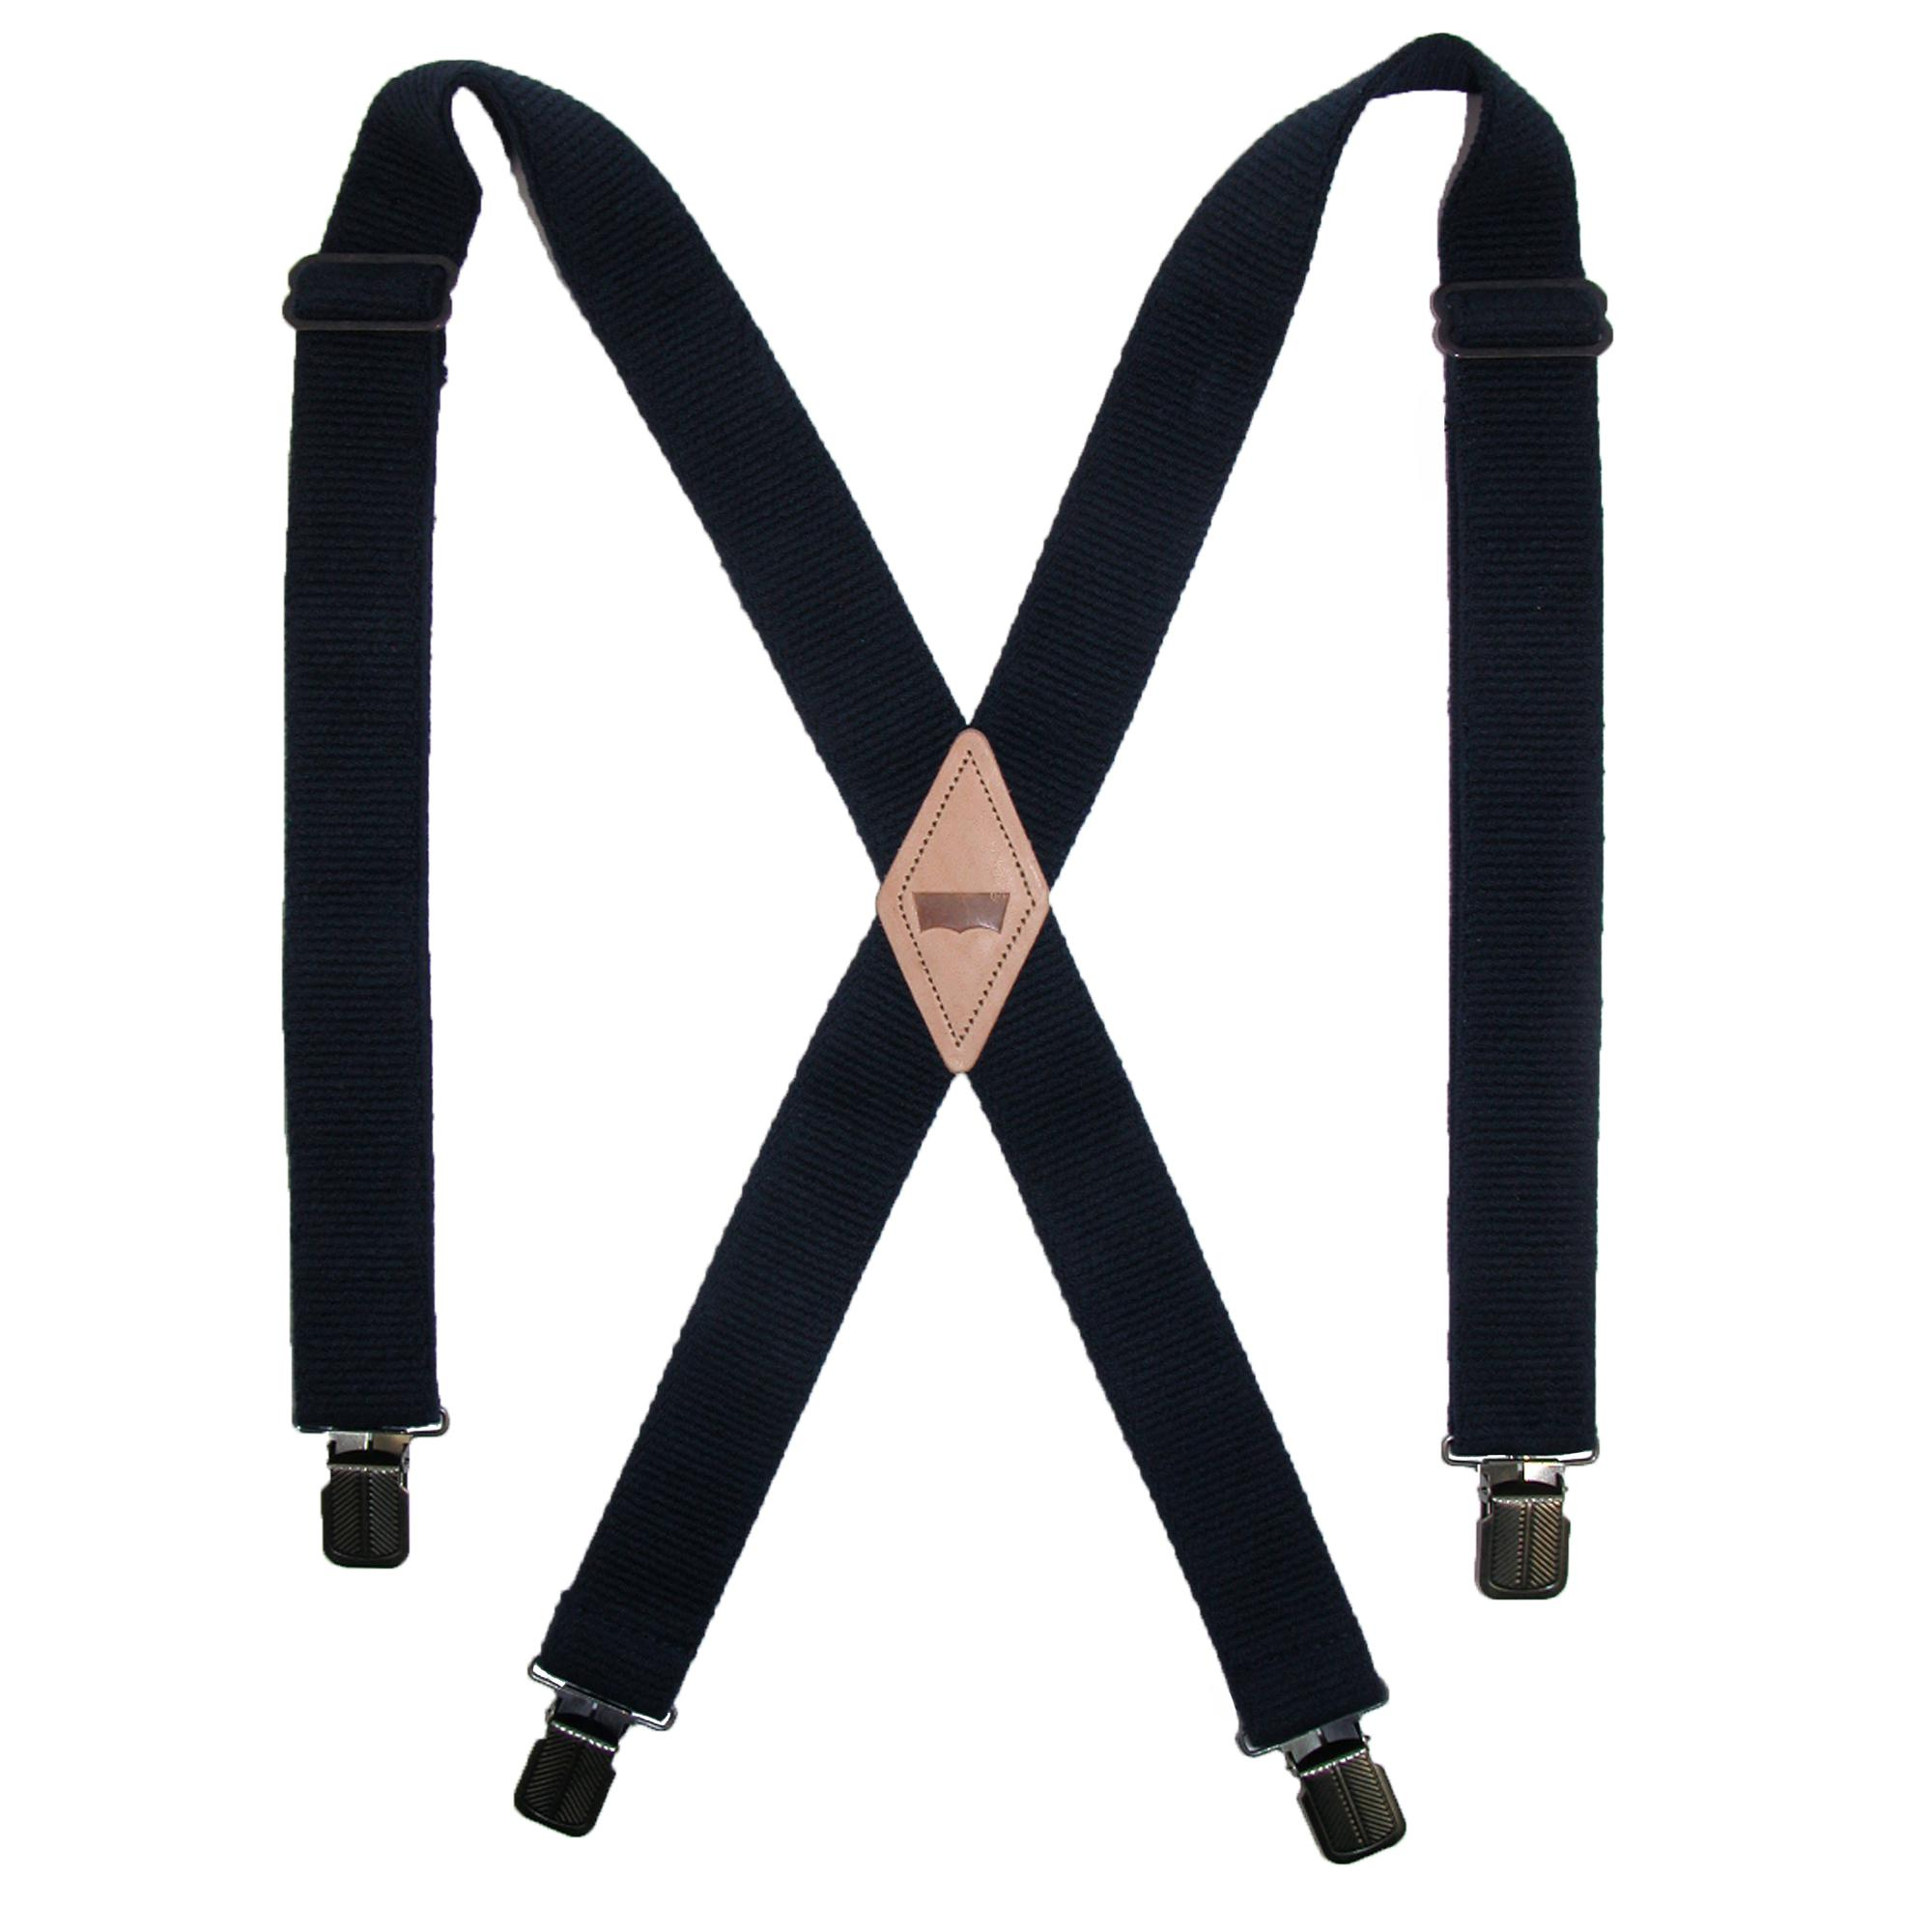 Levis Men's Terry Elastic 1 1/2 Inch Clip-End Suspenders